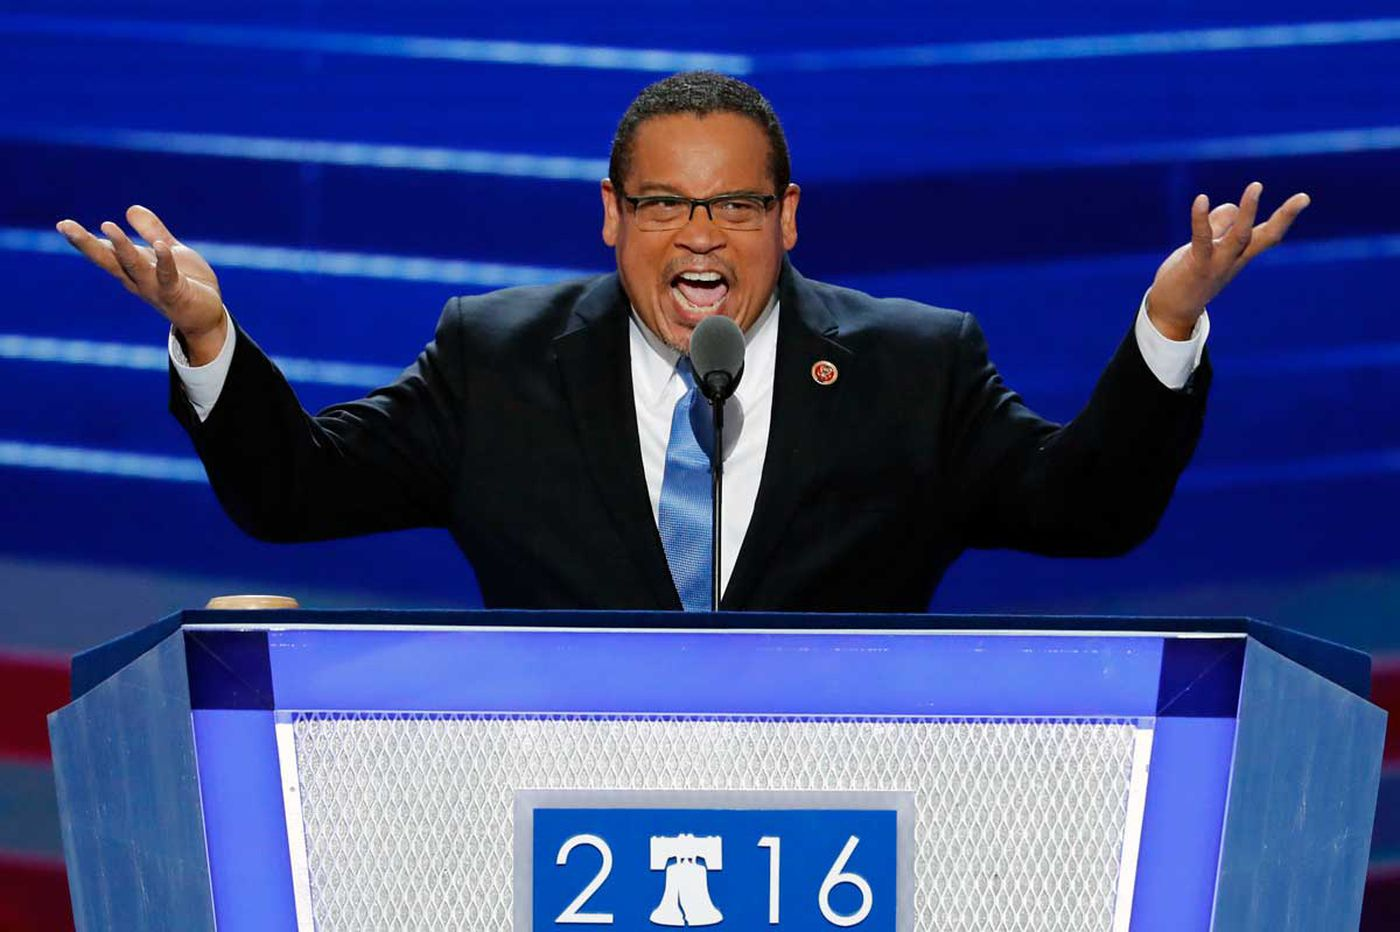 Commentary: Democrats, support Ellison for DNC chair